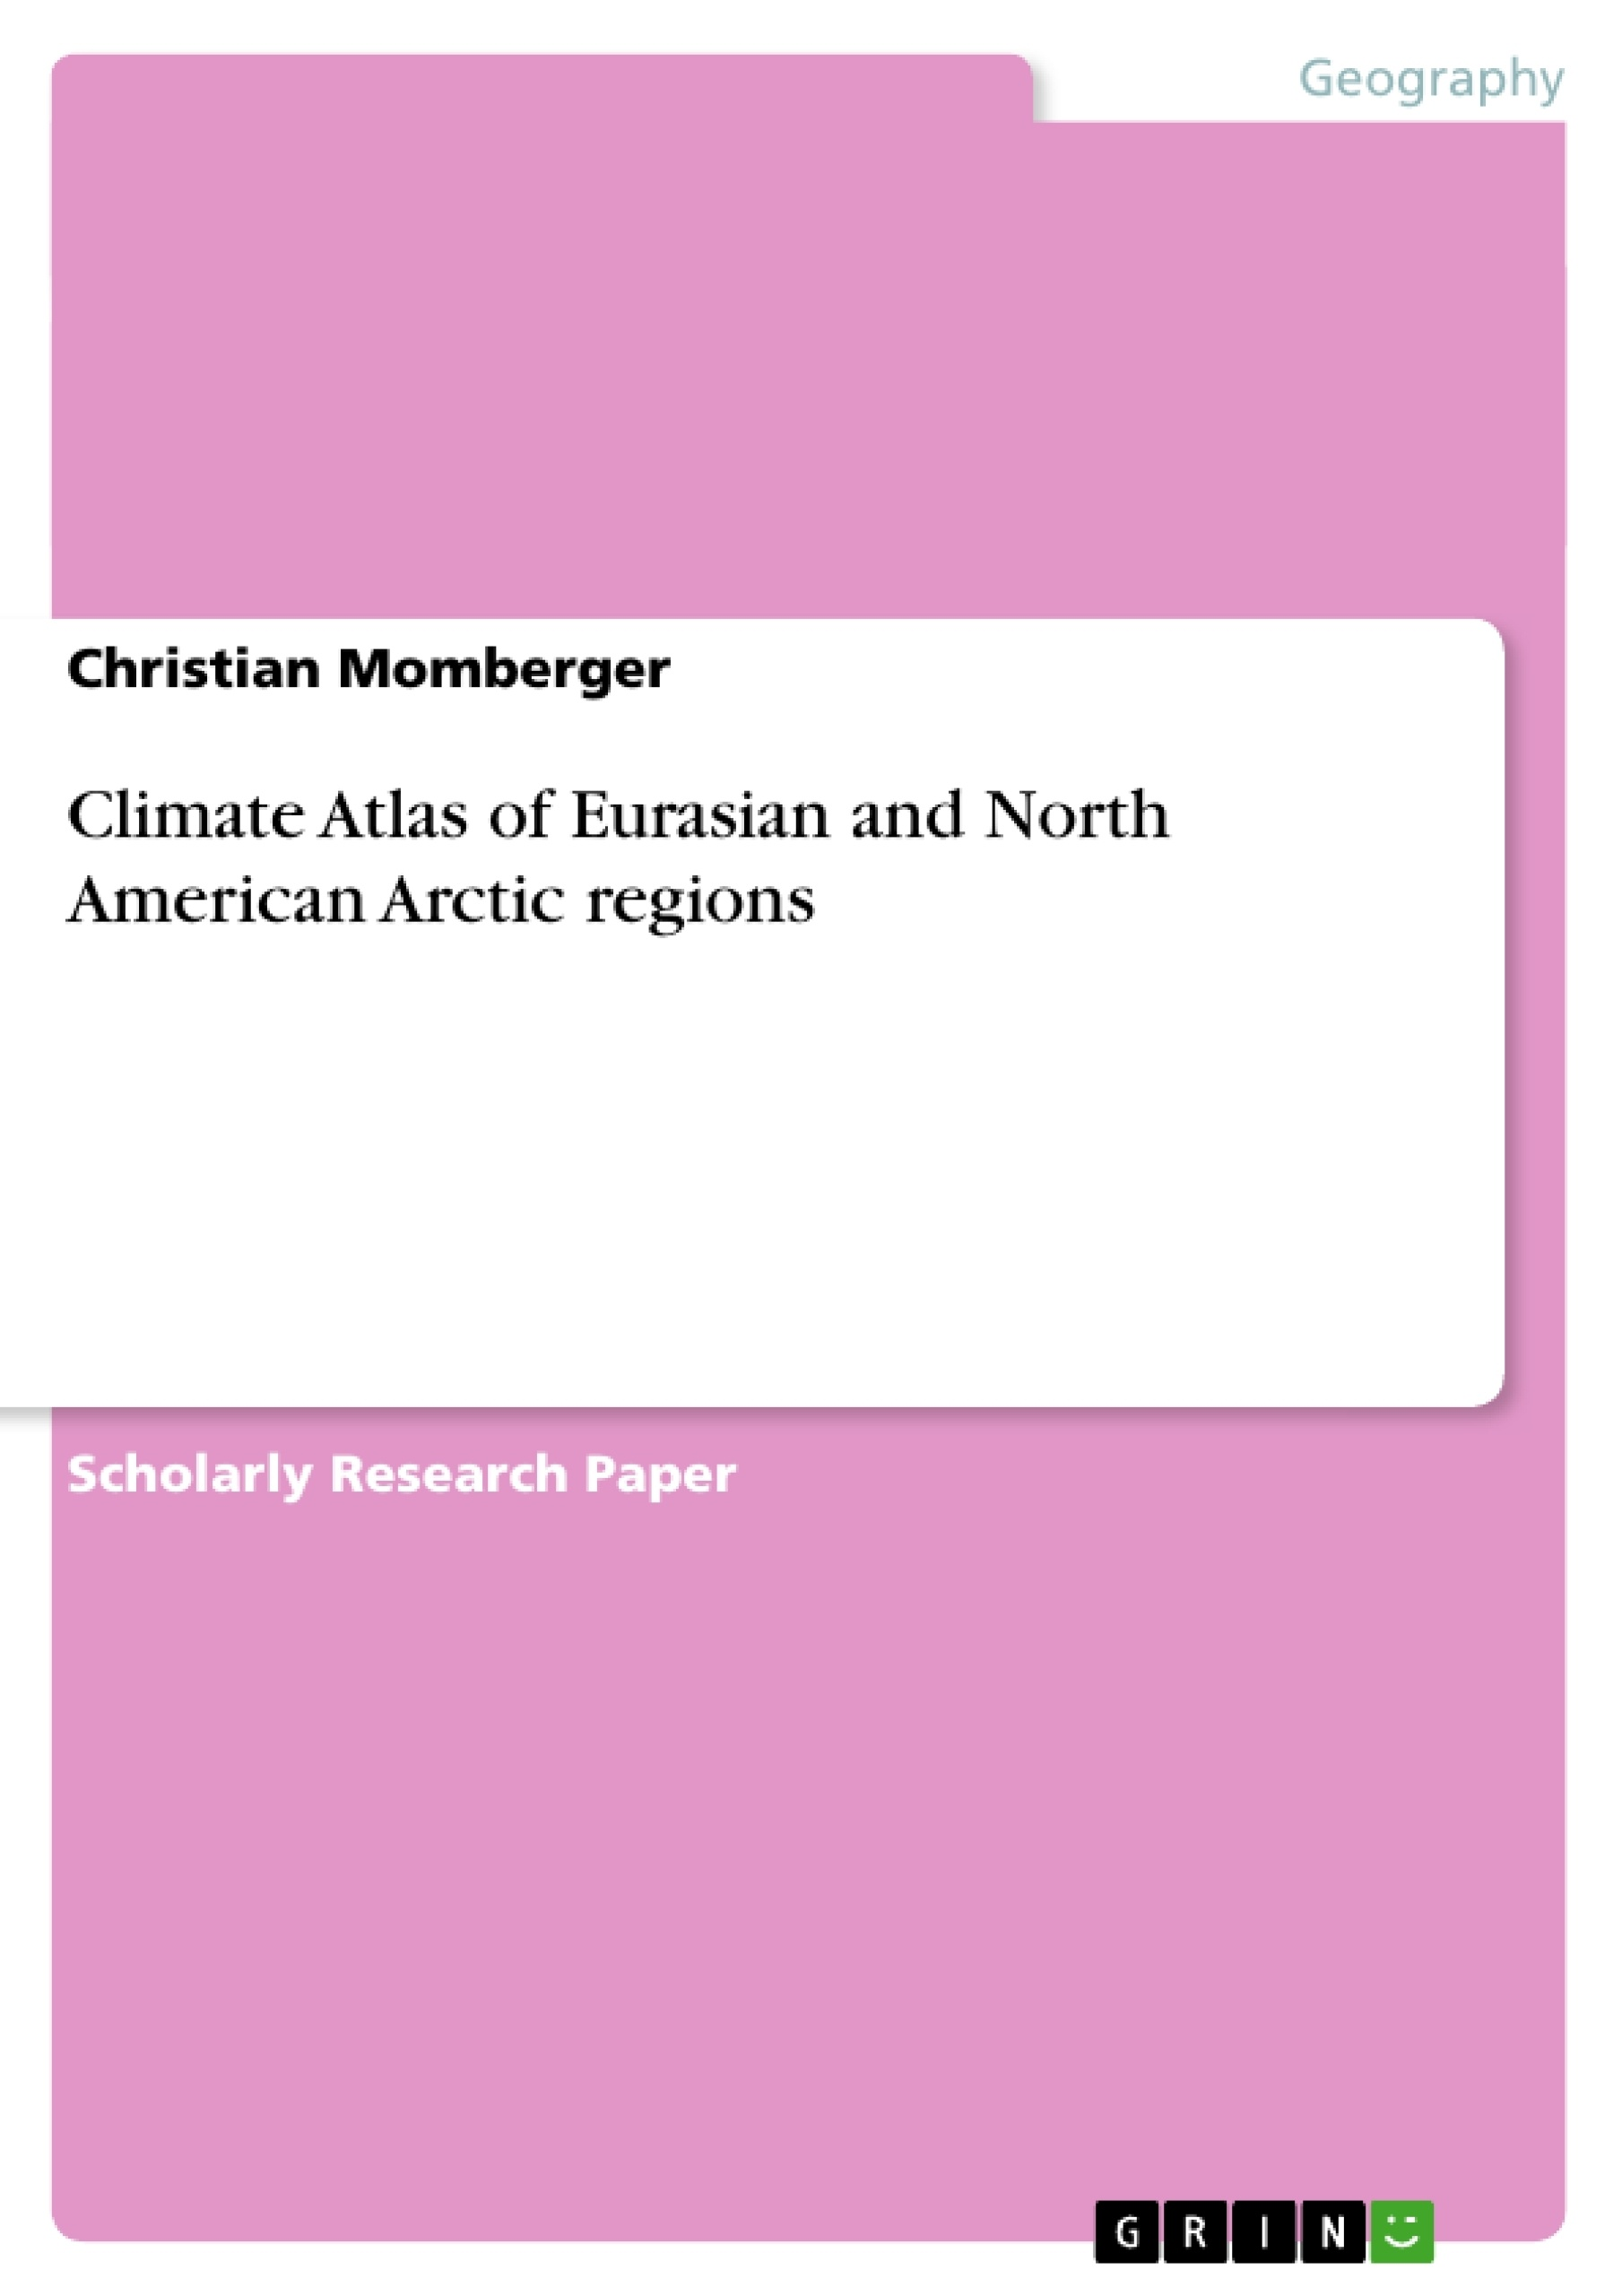 Title: Climate Atlas of Eurasian and North American Arctic regions